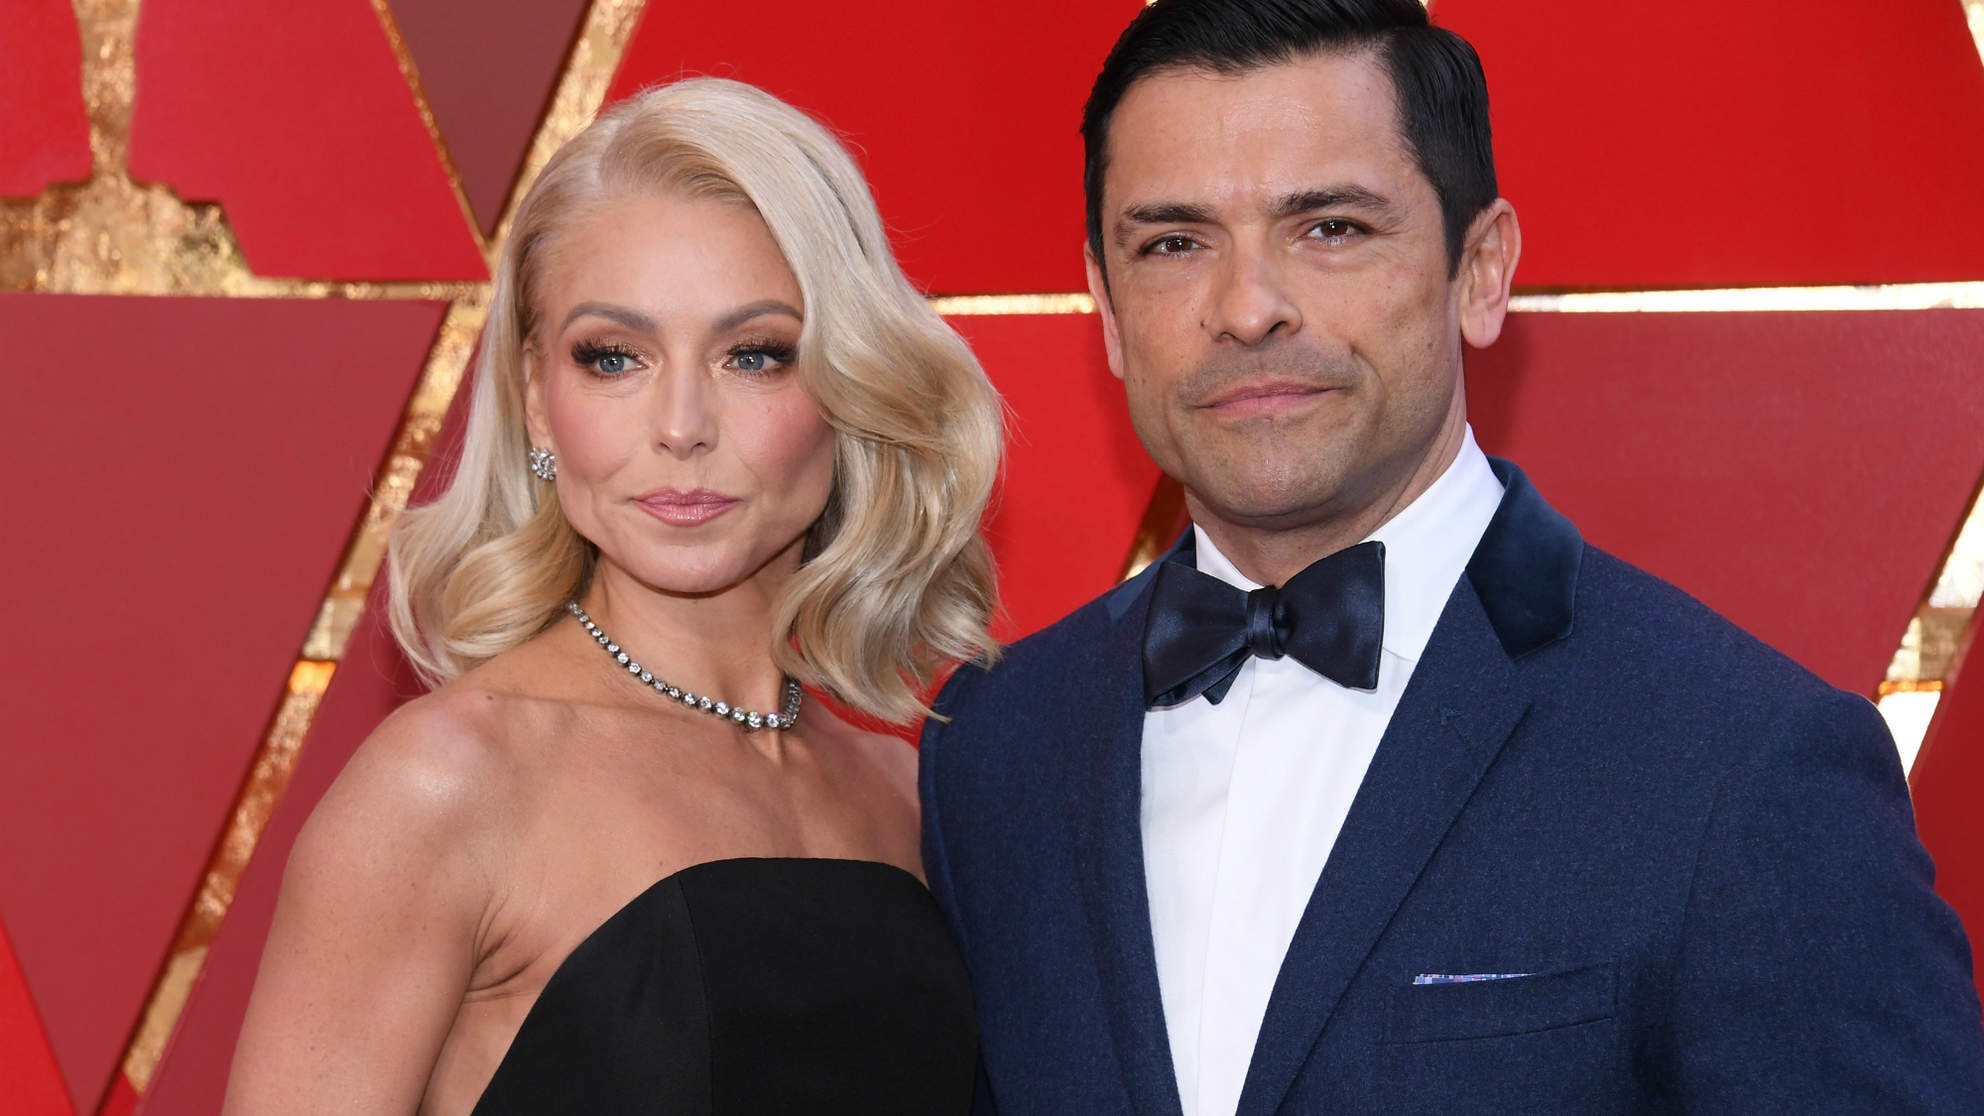 Kelly Ripa's Husband Mark Consuelos Went After Her Body Shamers